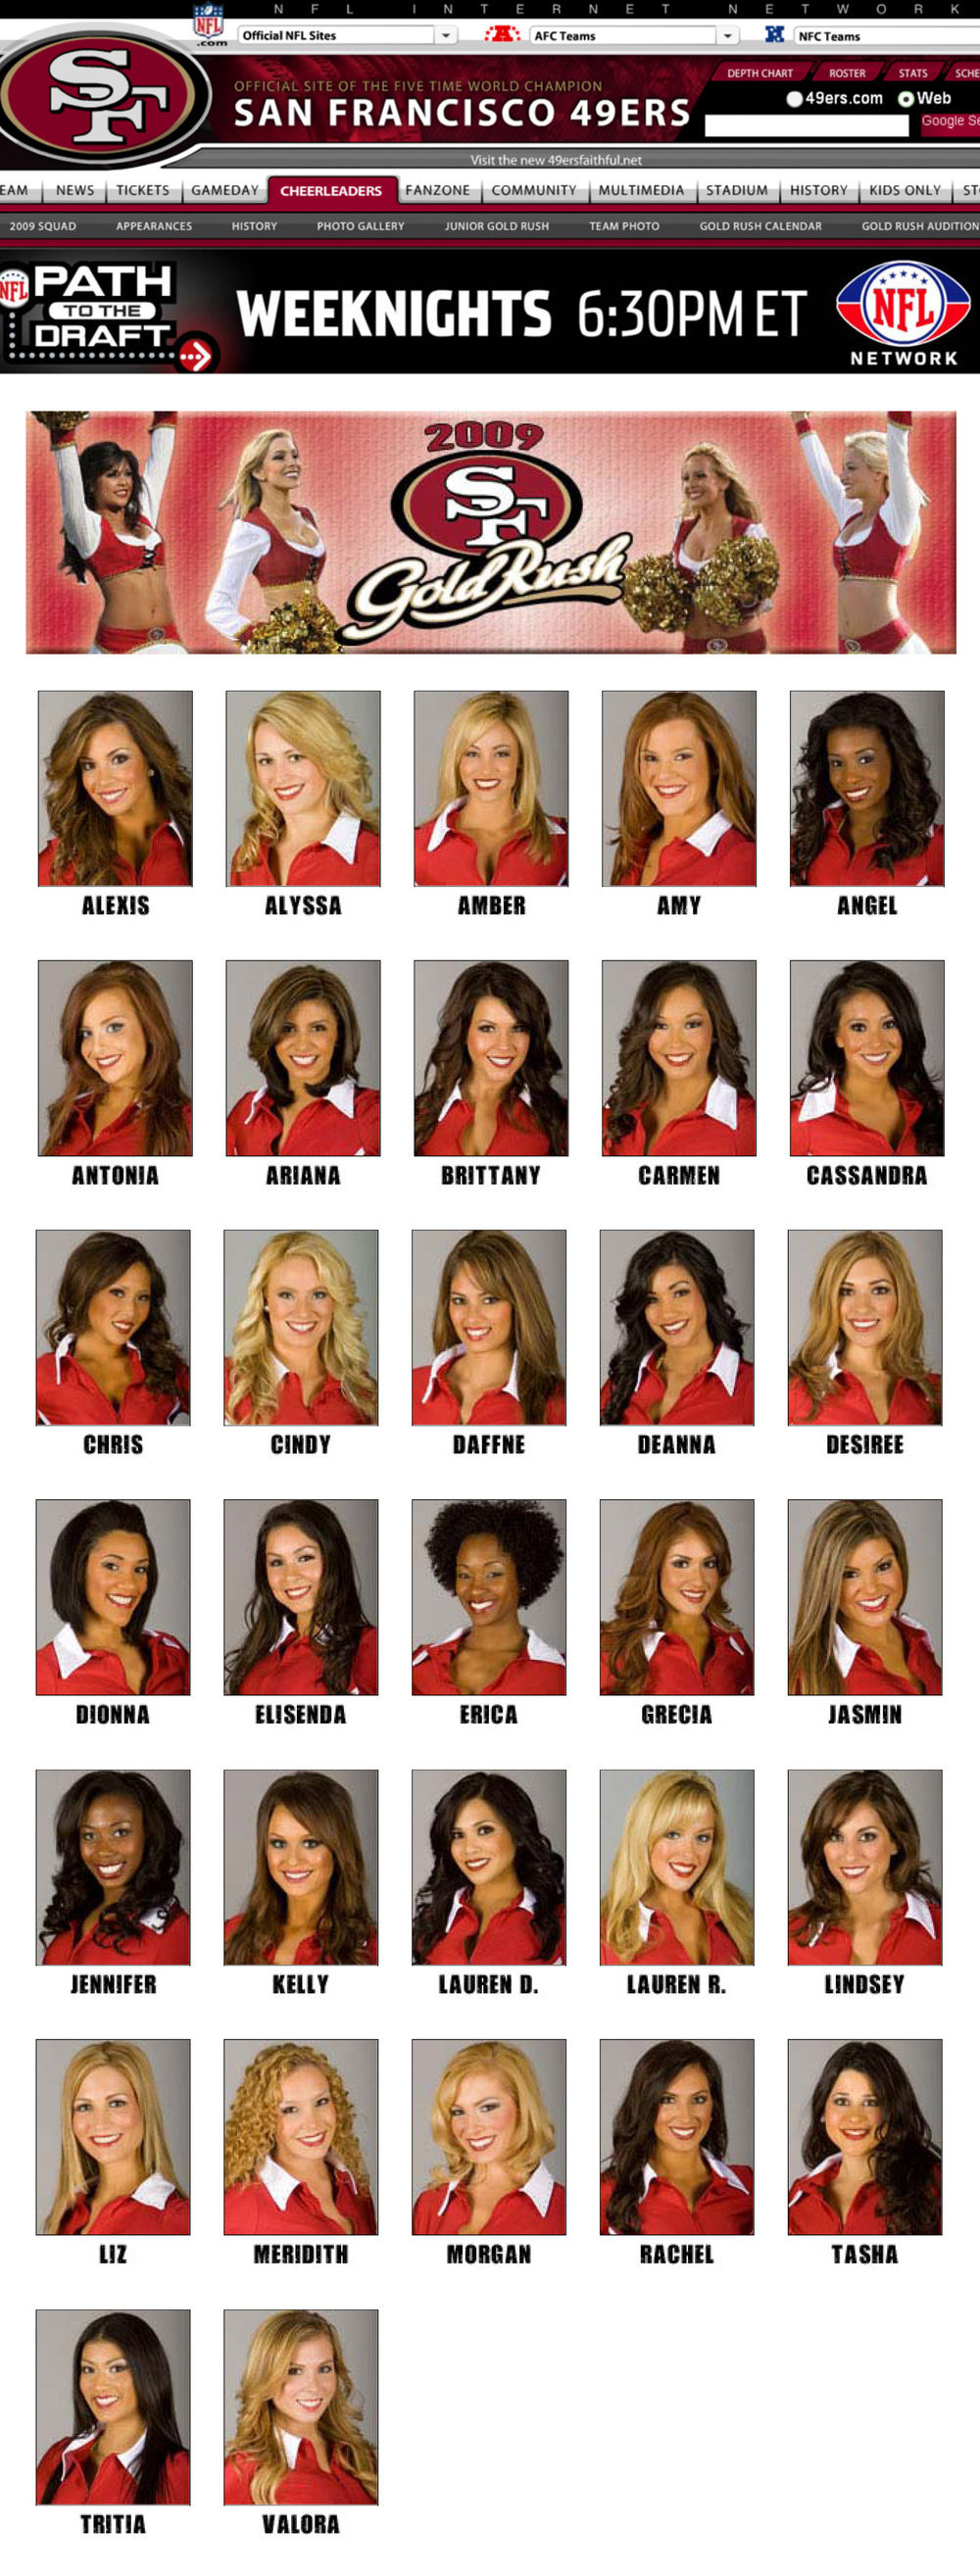 headshot-group-photo-49ers-gold-rush-cheerleaders-team.jpg